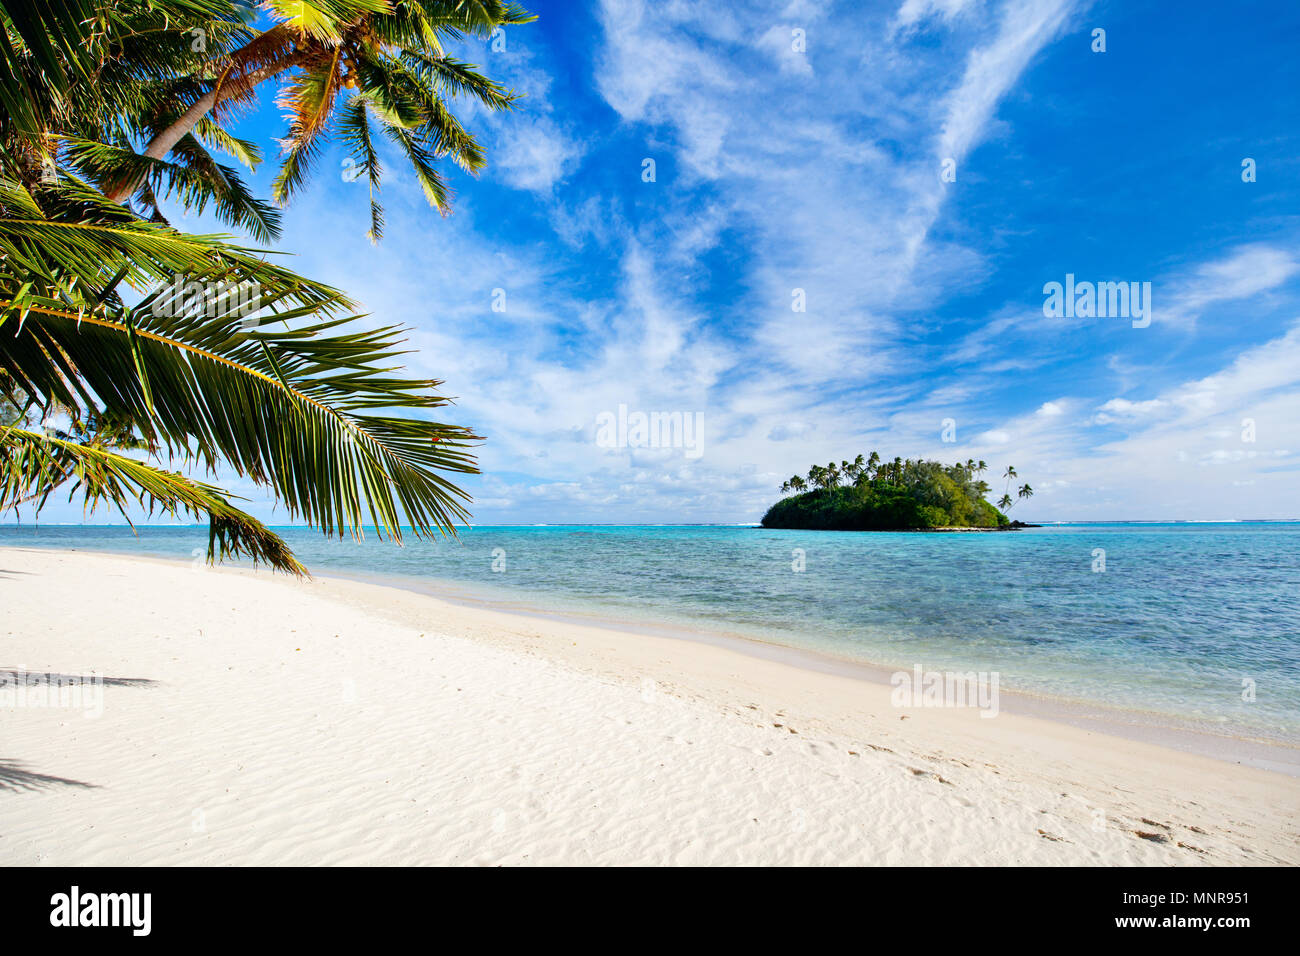 Beautiful tropical beach with palm trees, white sand, turquoise ocean water and blue sky at Cook Islands, South Pacific - Stock Image